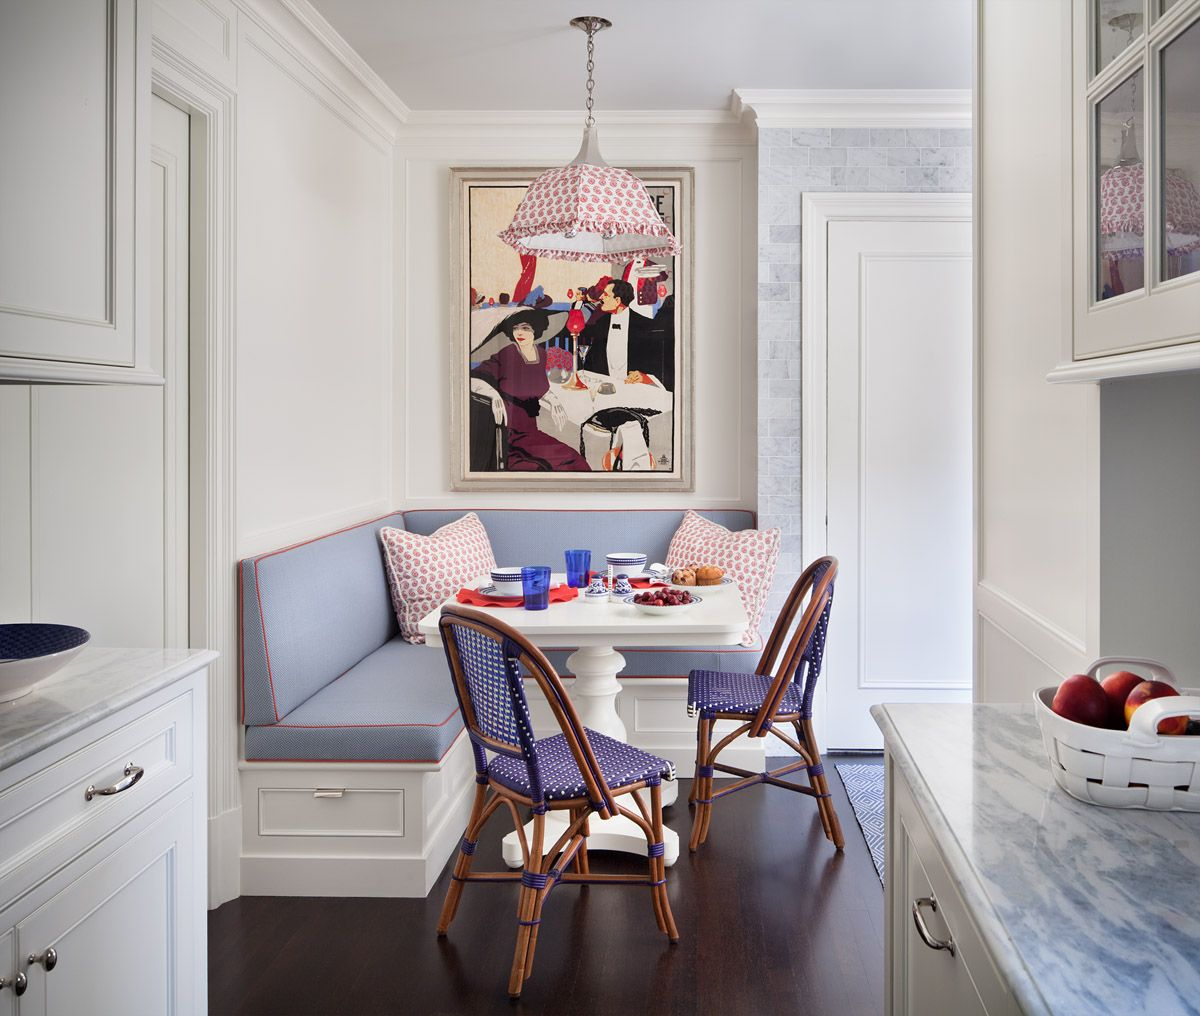 Painted Family Kitchen With Dining Nook: Breakfast Nook With Built-in Banquette